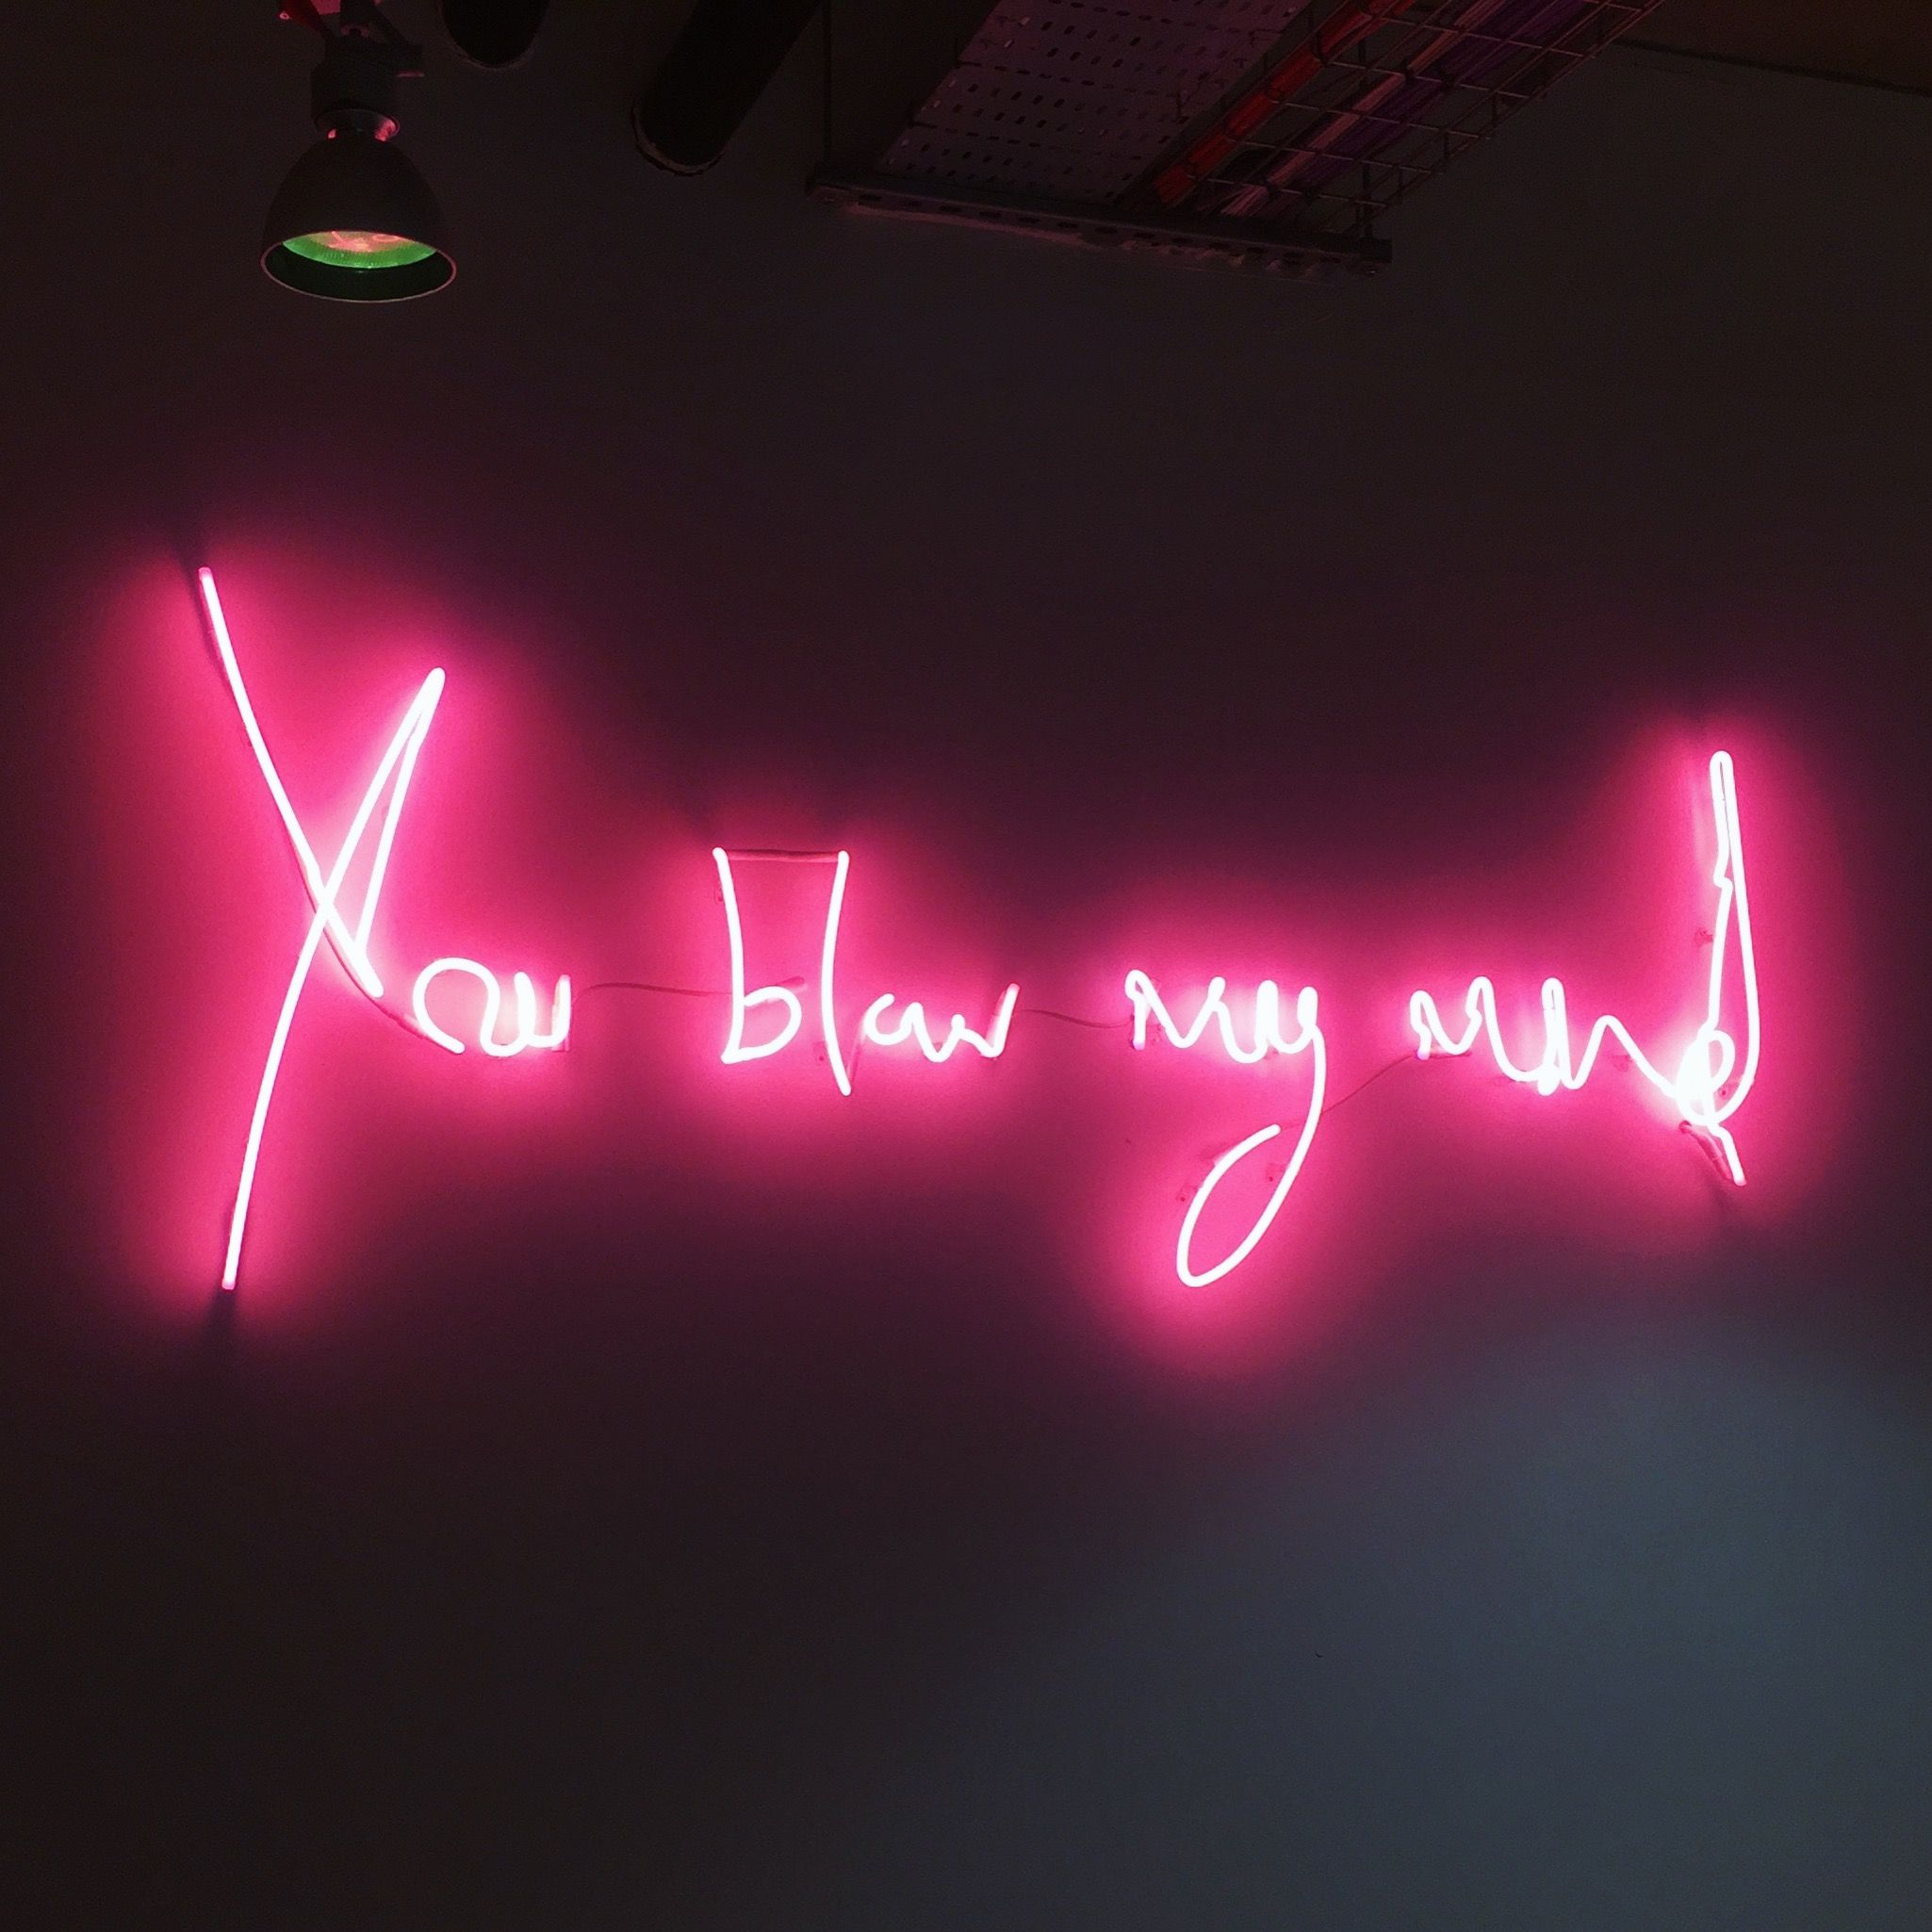 Fluorescent Light Quotes: Neon Signs, Neon Light Signs